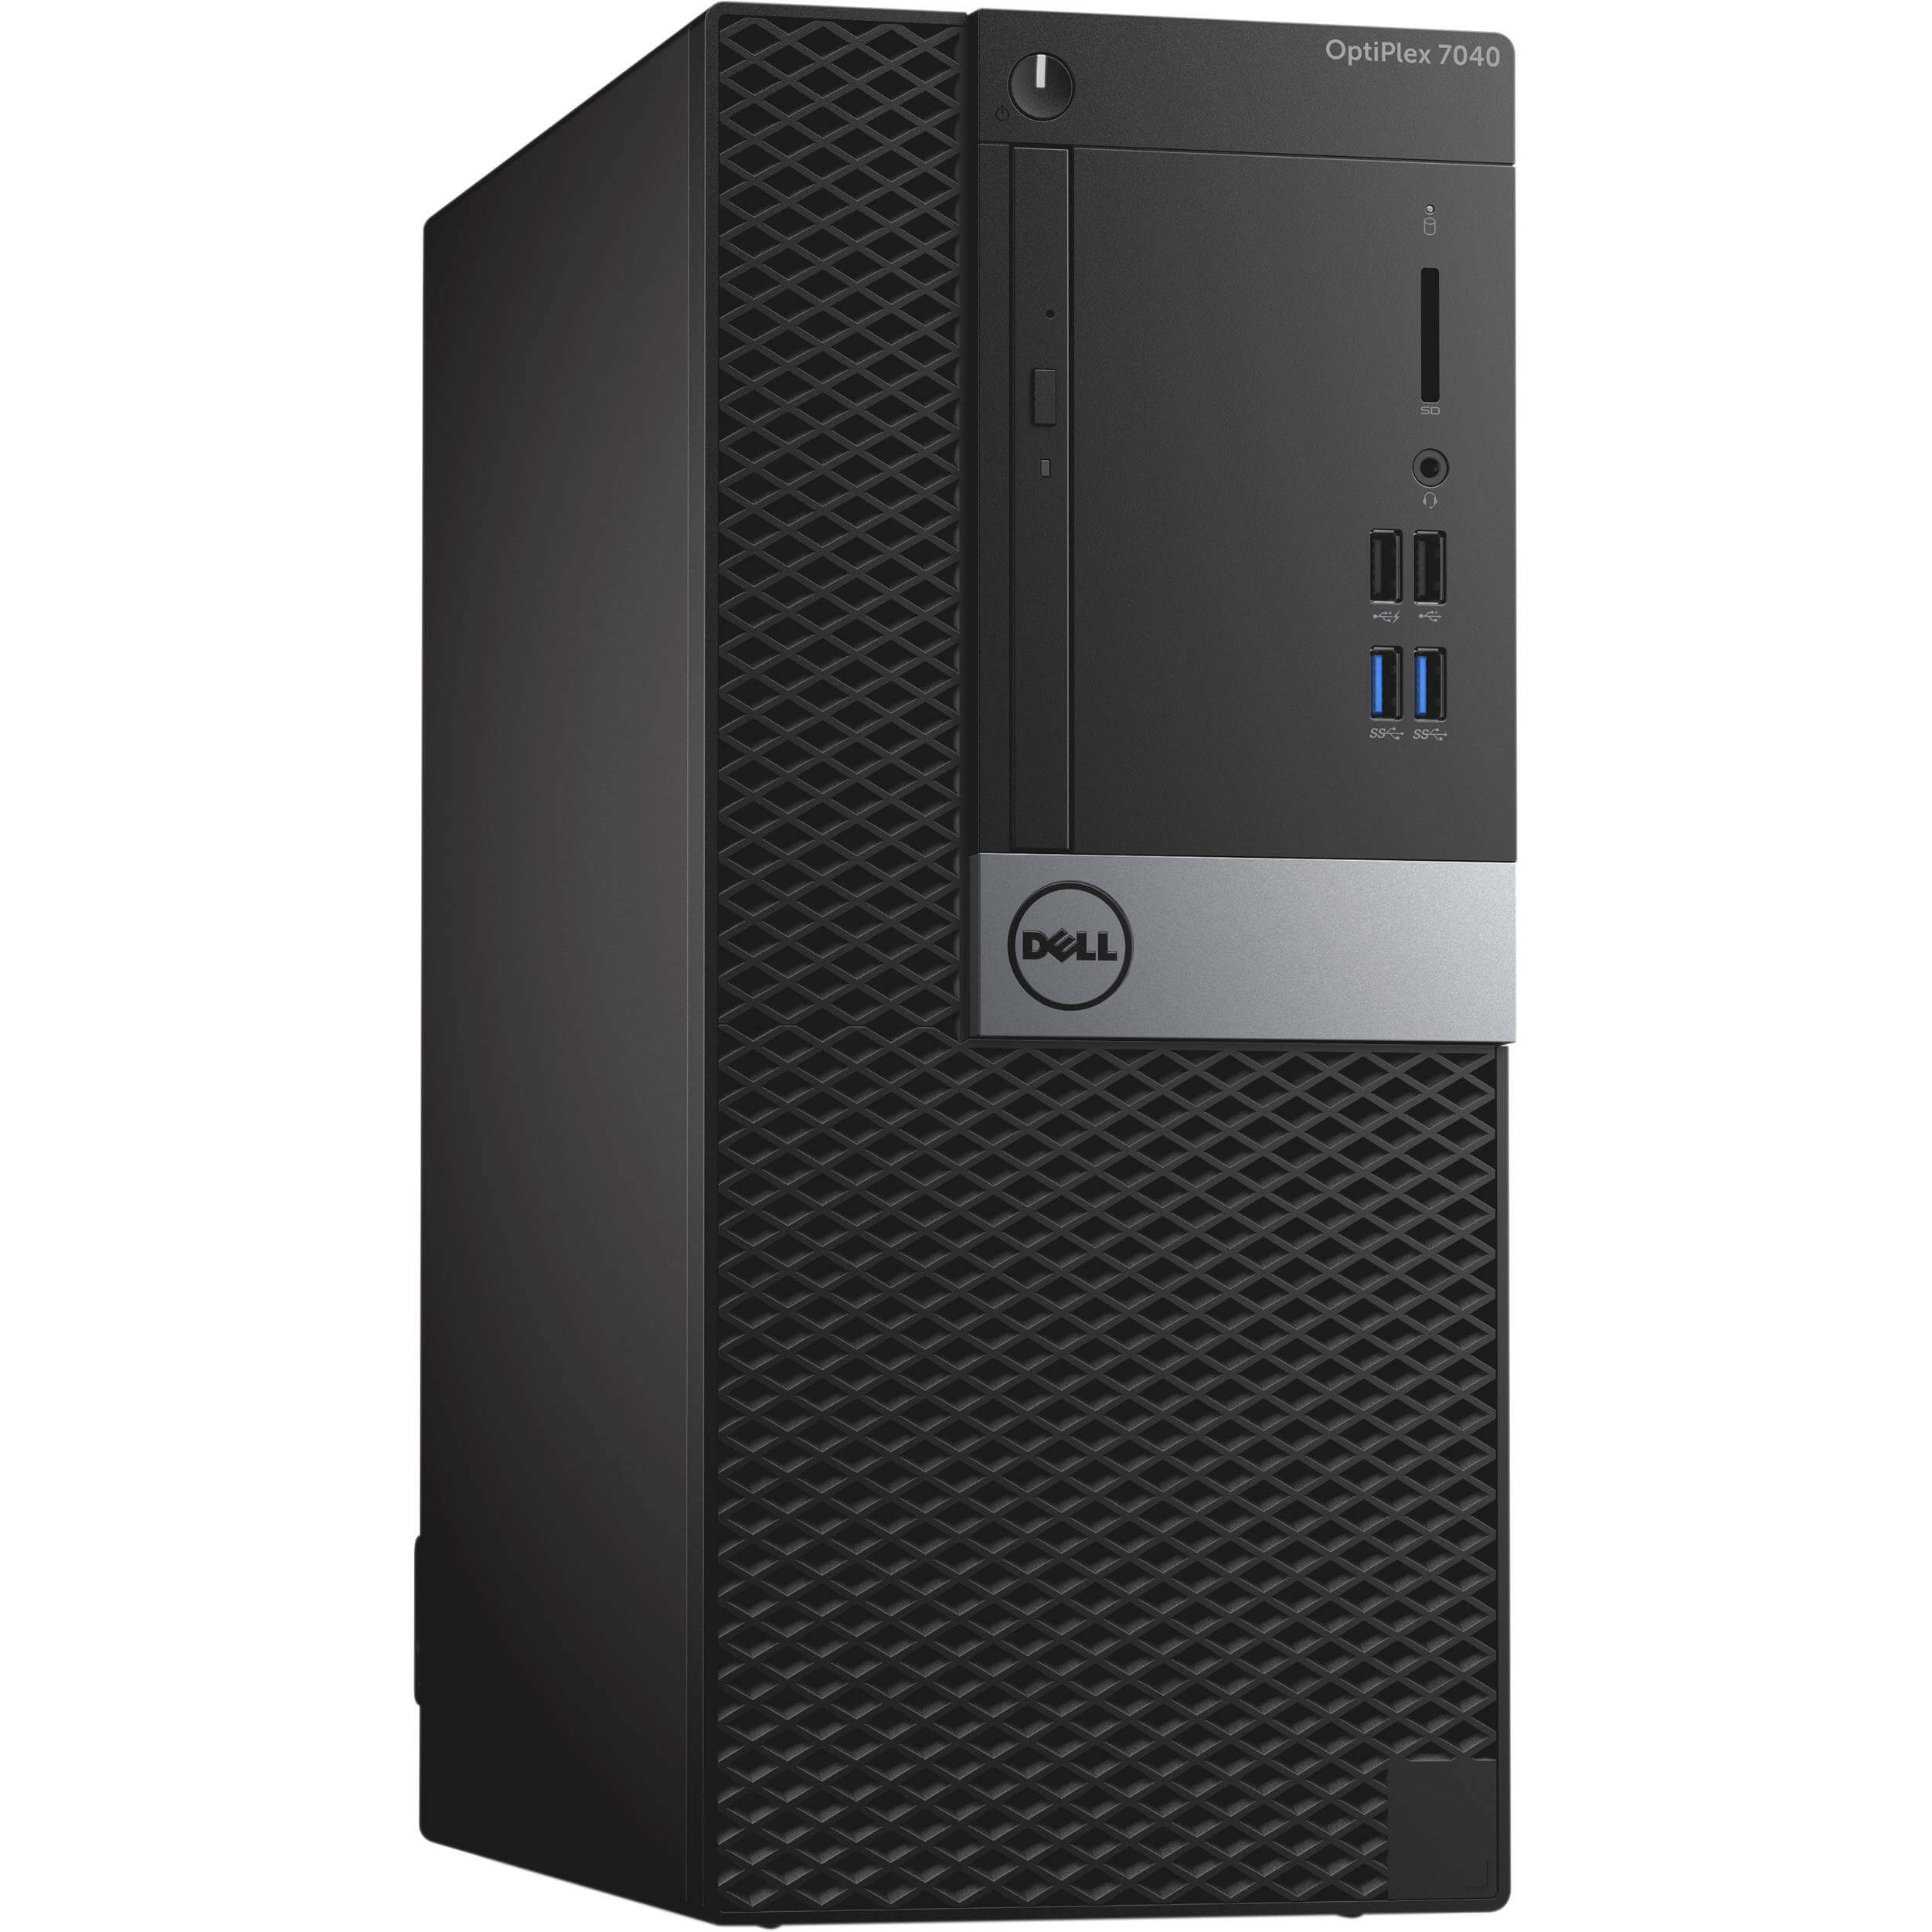 DELL 7040 MINI TOWER I5-6500 3.2 / 8192 MB DDR4 / 500 GB SSD + 500 GB / DVD-RW / WINDOWS 10 PRO